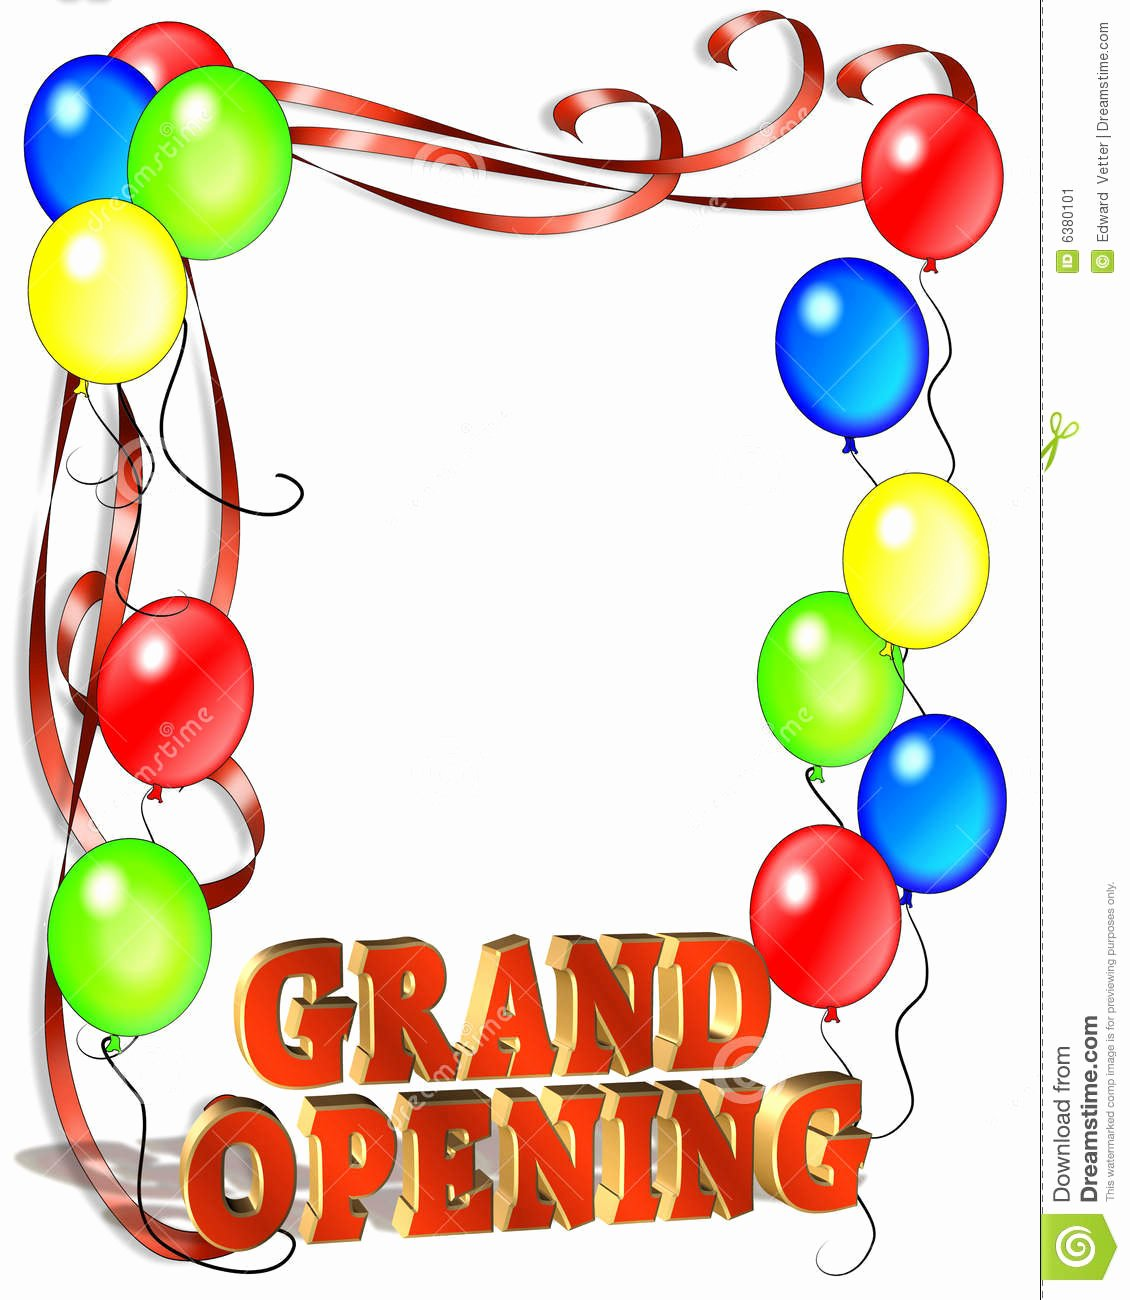 Grand Opening Flyer Template Free Unique Grand Opening Sign Template Stock Illustration Illustration Of Announcement Text